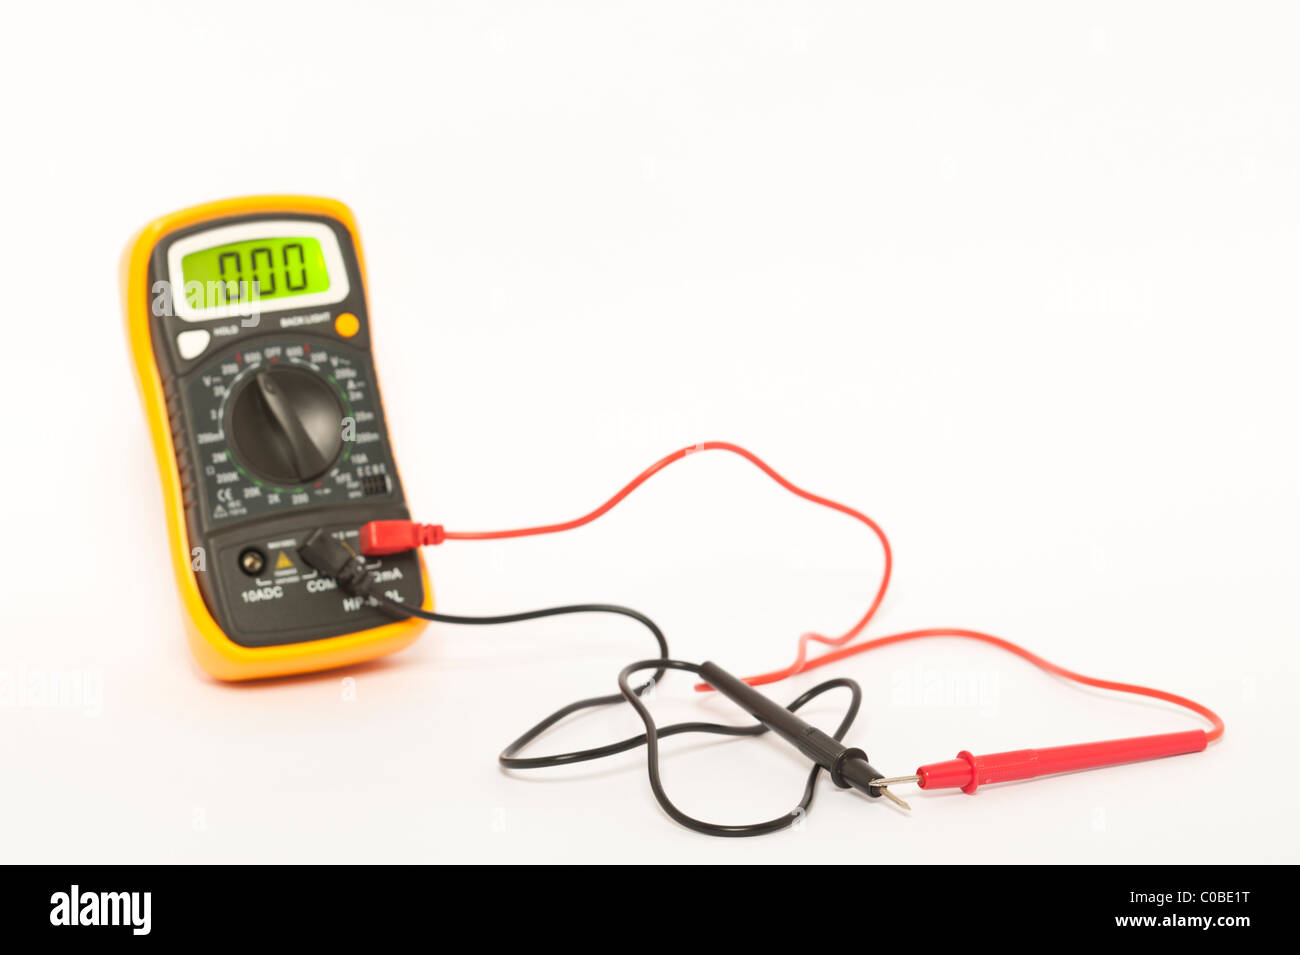 Voltmeter Stock Photos & Voltmeter Stock Images - Alamy